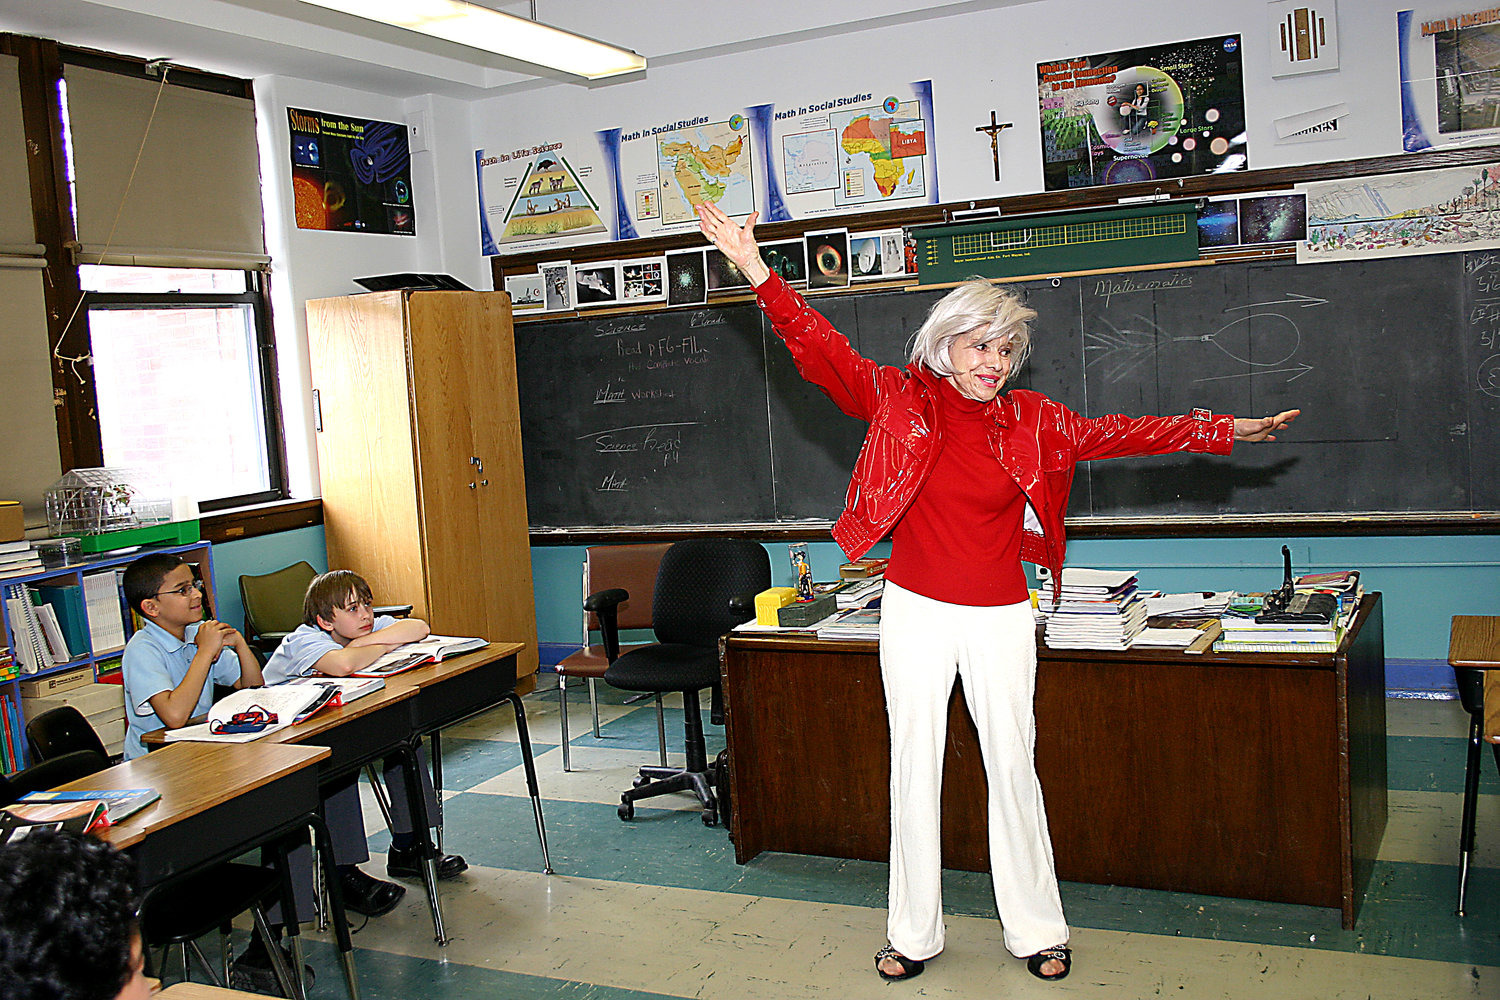 On May 7, 2004, Carol Channing visited the De La Salle School students after performing at fundraiser for the school.